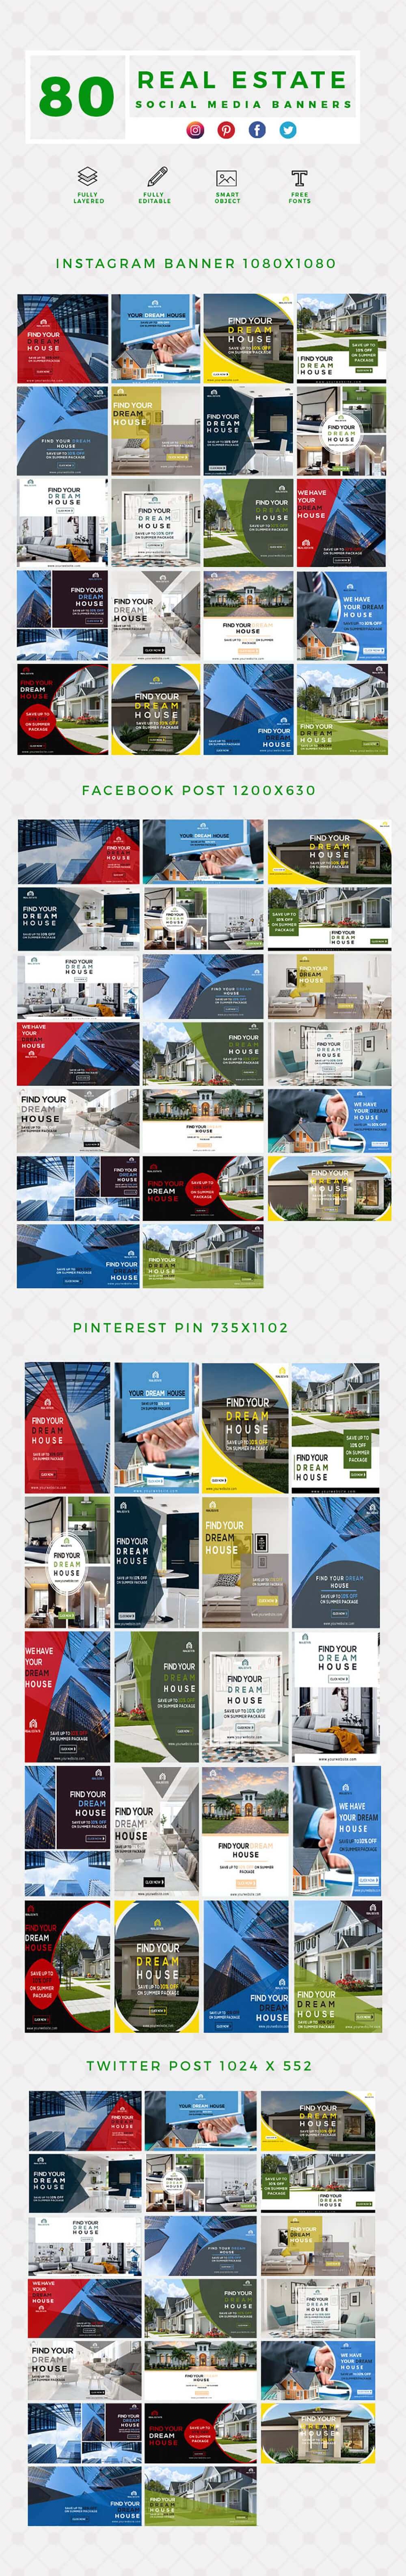 640 Social Media Banner Templates Bundle PREVIEW-REAL-ESTATE